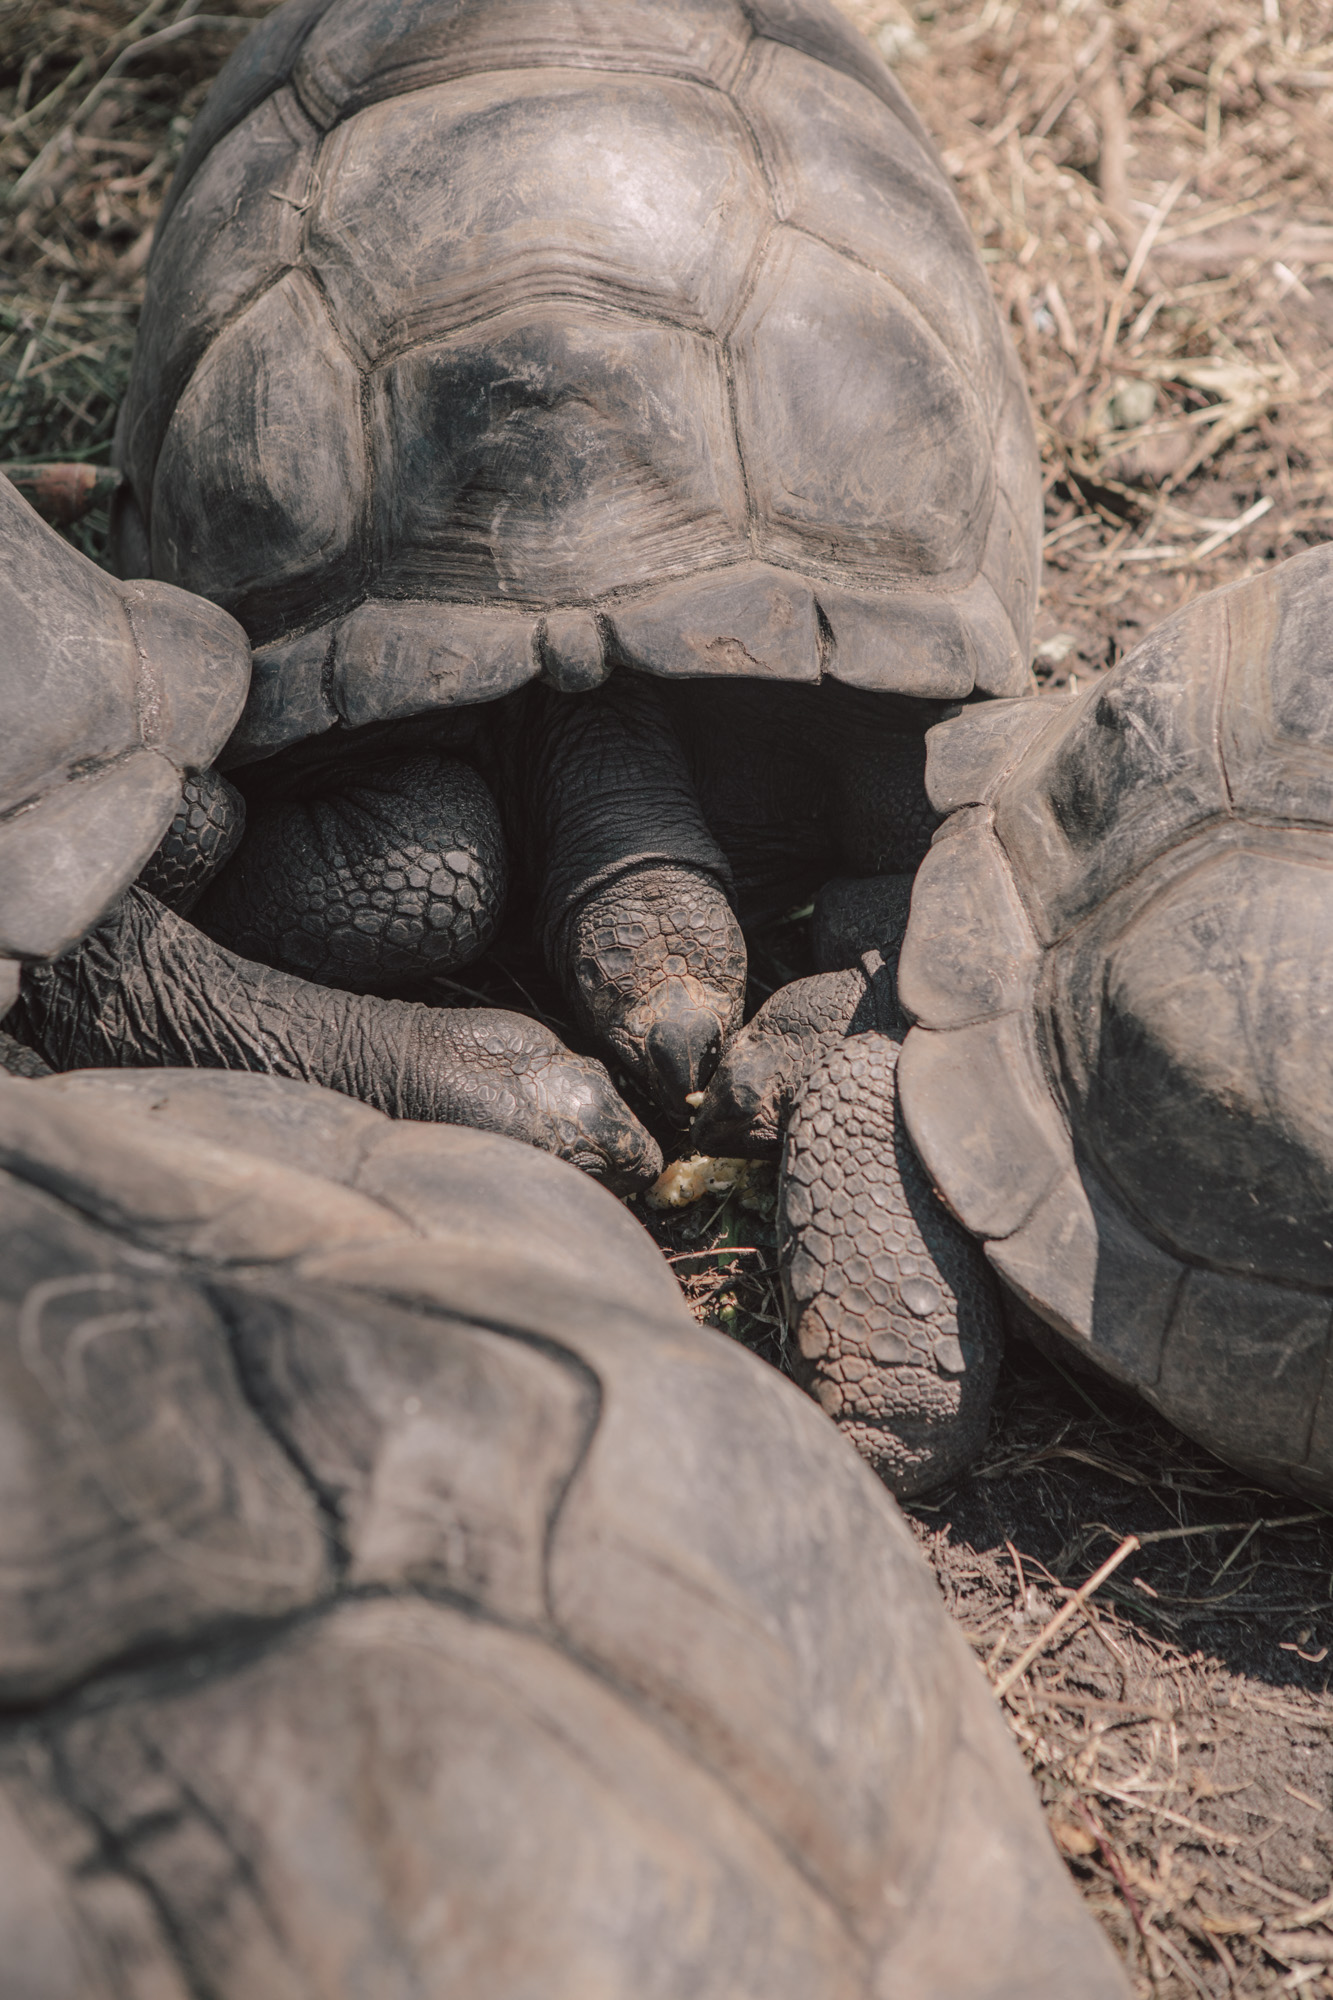 Don't let this photo fool you, those tortoises are the size of large dog houses.